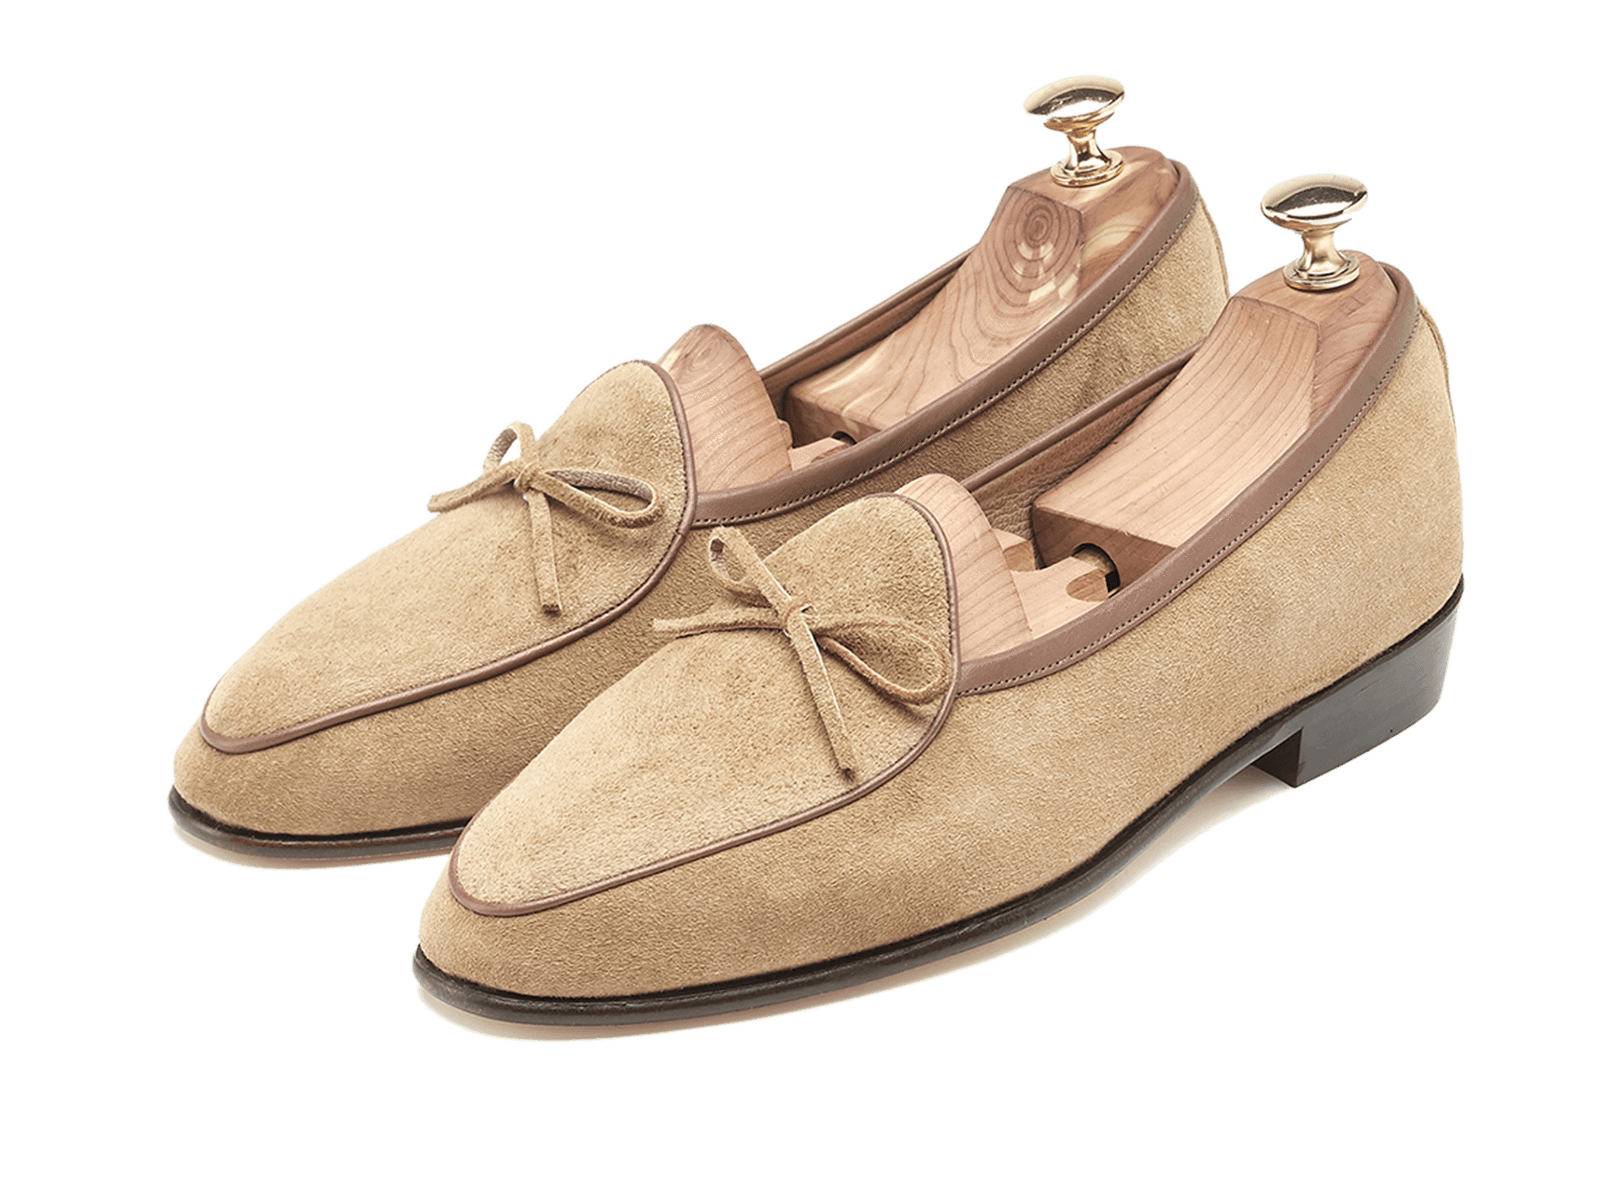 Sagan Classic String in Sand Suede